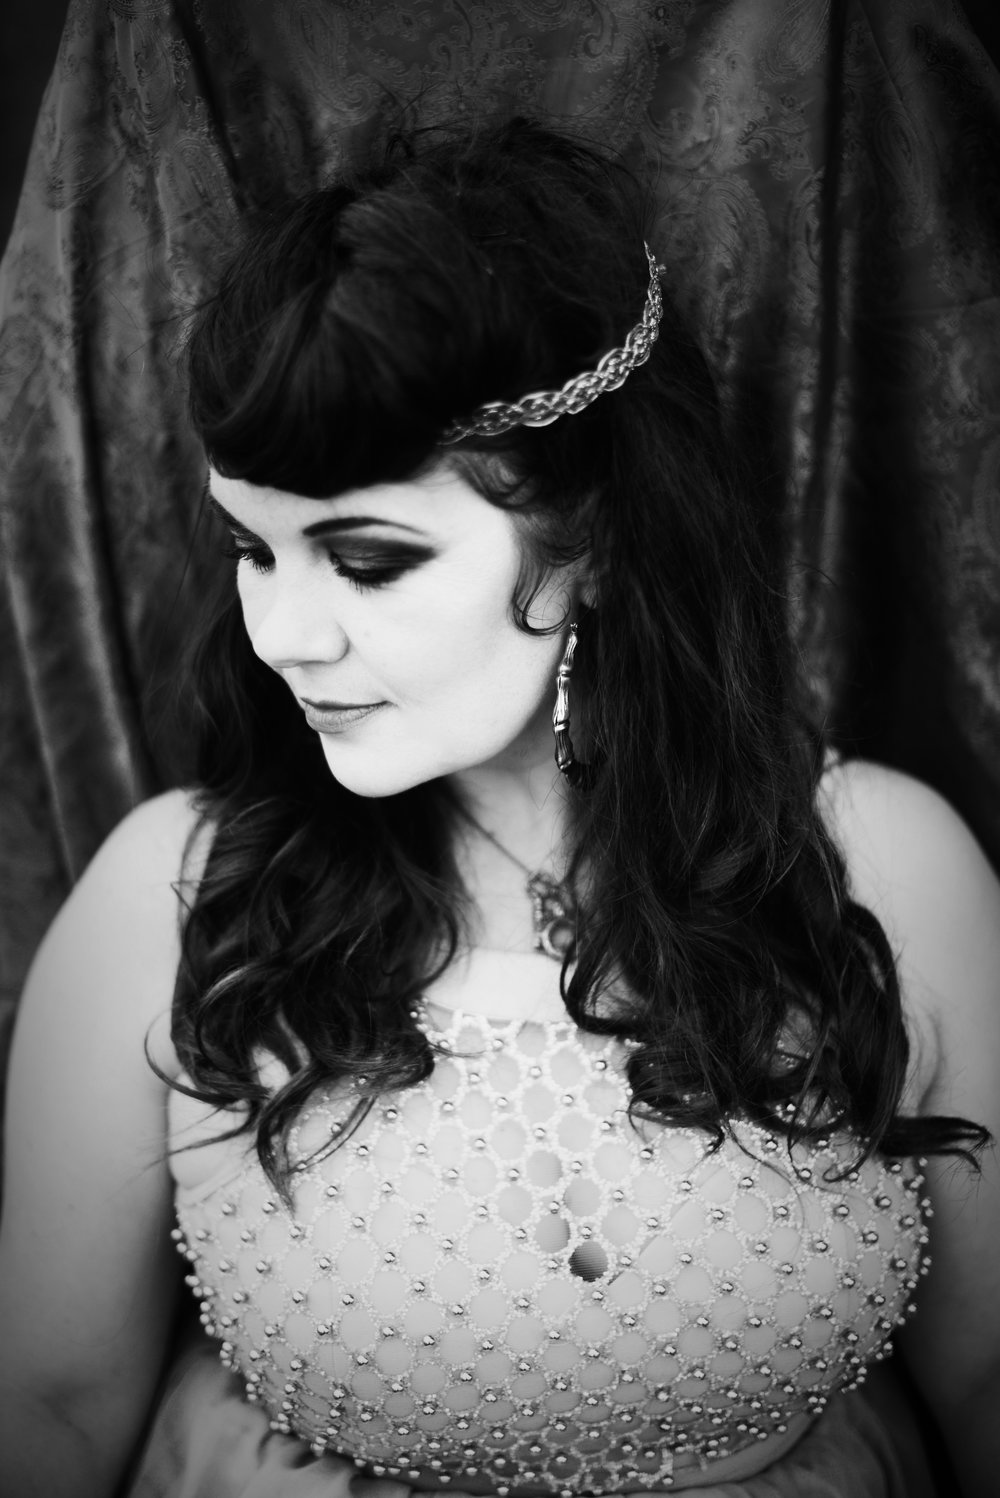 JOSEPHINE   Has been enjoying her time with the Mediaeval Baebes since 2012. She is a foot percussionist, international Ceilidh / barn dance caller, actress & voice over artist. She resides in a tiny boat on the canals of London enjoying her mediaeval lifestyle and is a skilled archer.